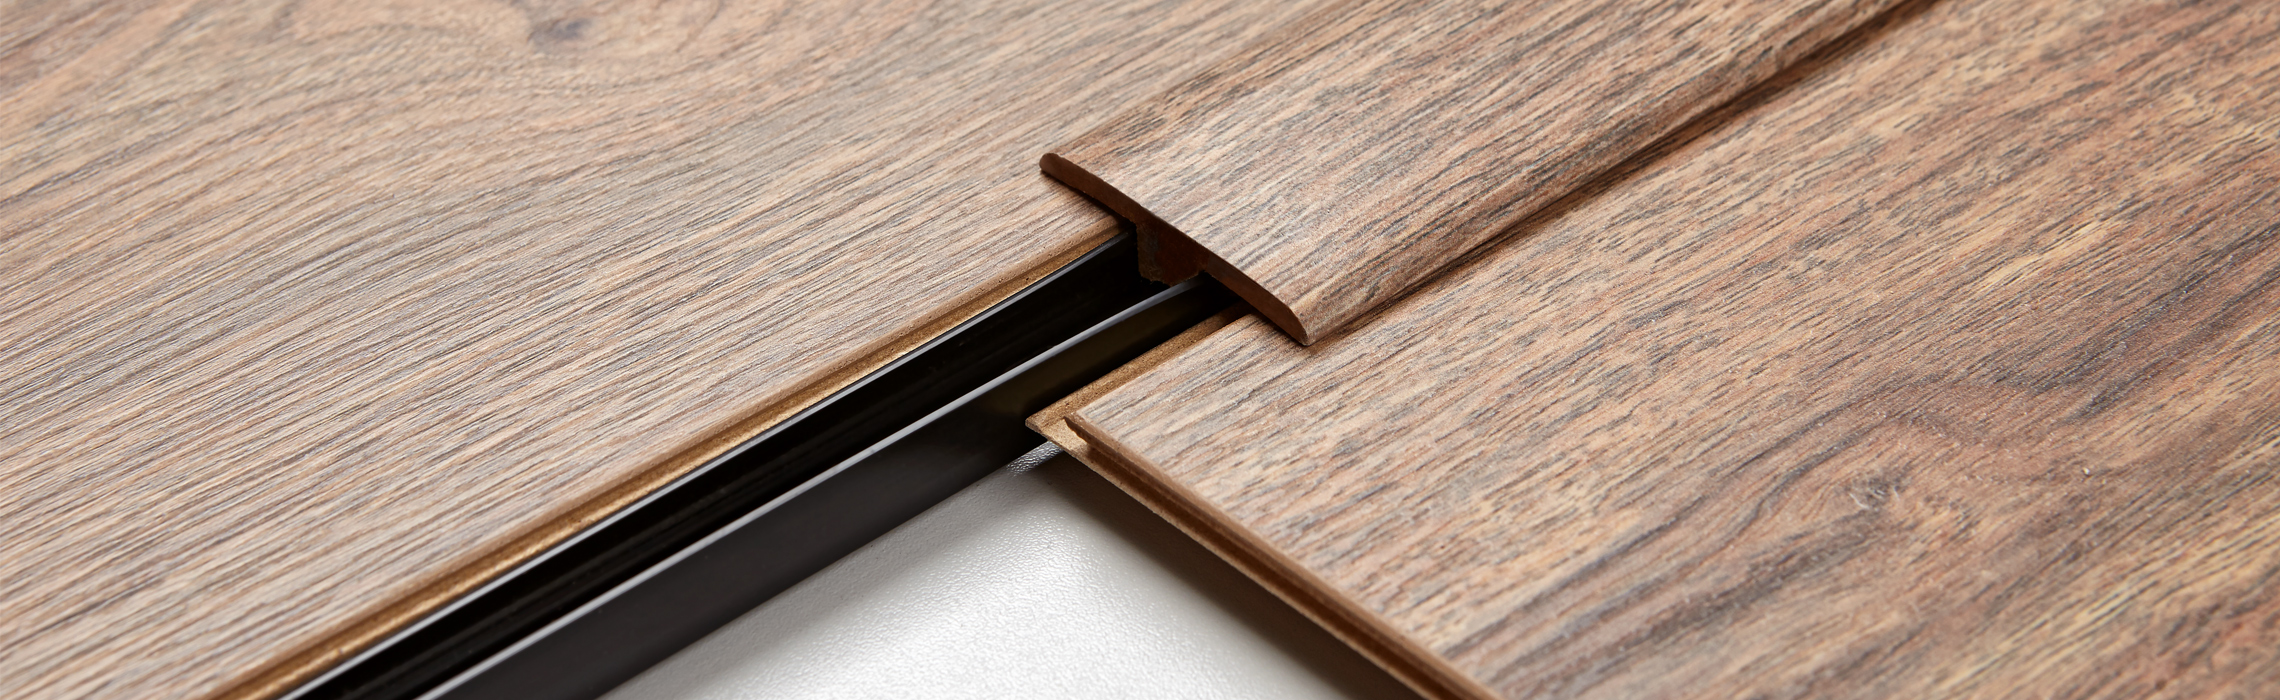 practical accessories for your laminate flooring. Black Bedroom Furniture Sets. Home Design Ideas